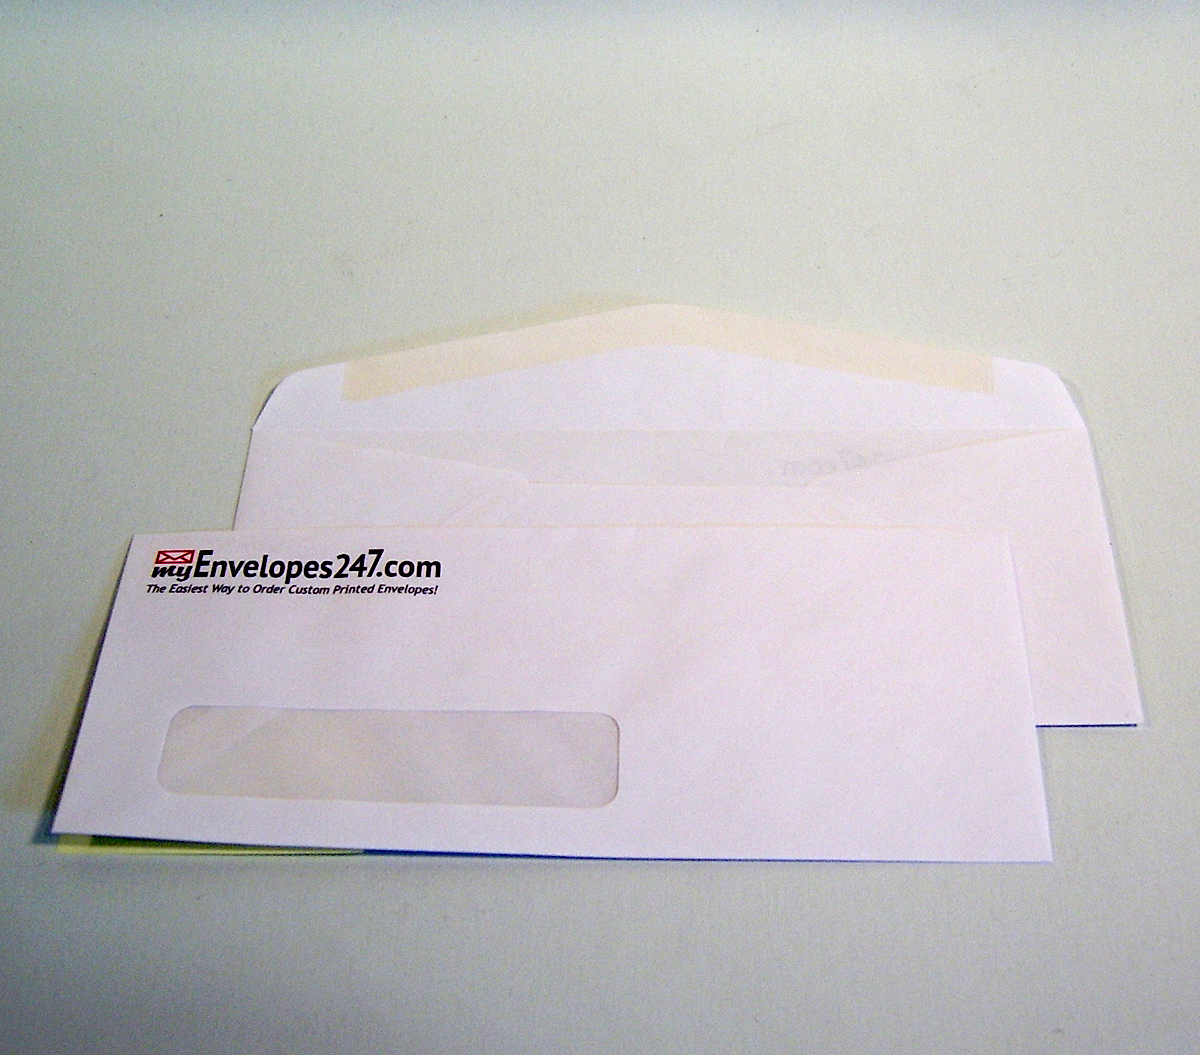 #9 Window Envelope